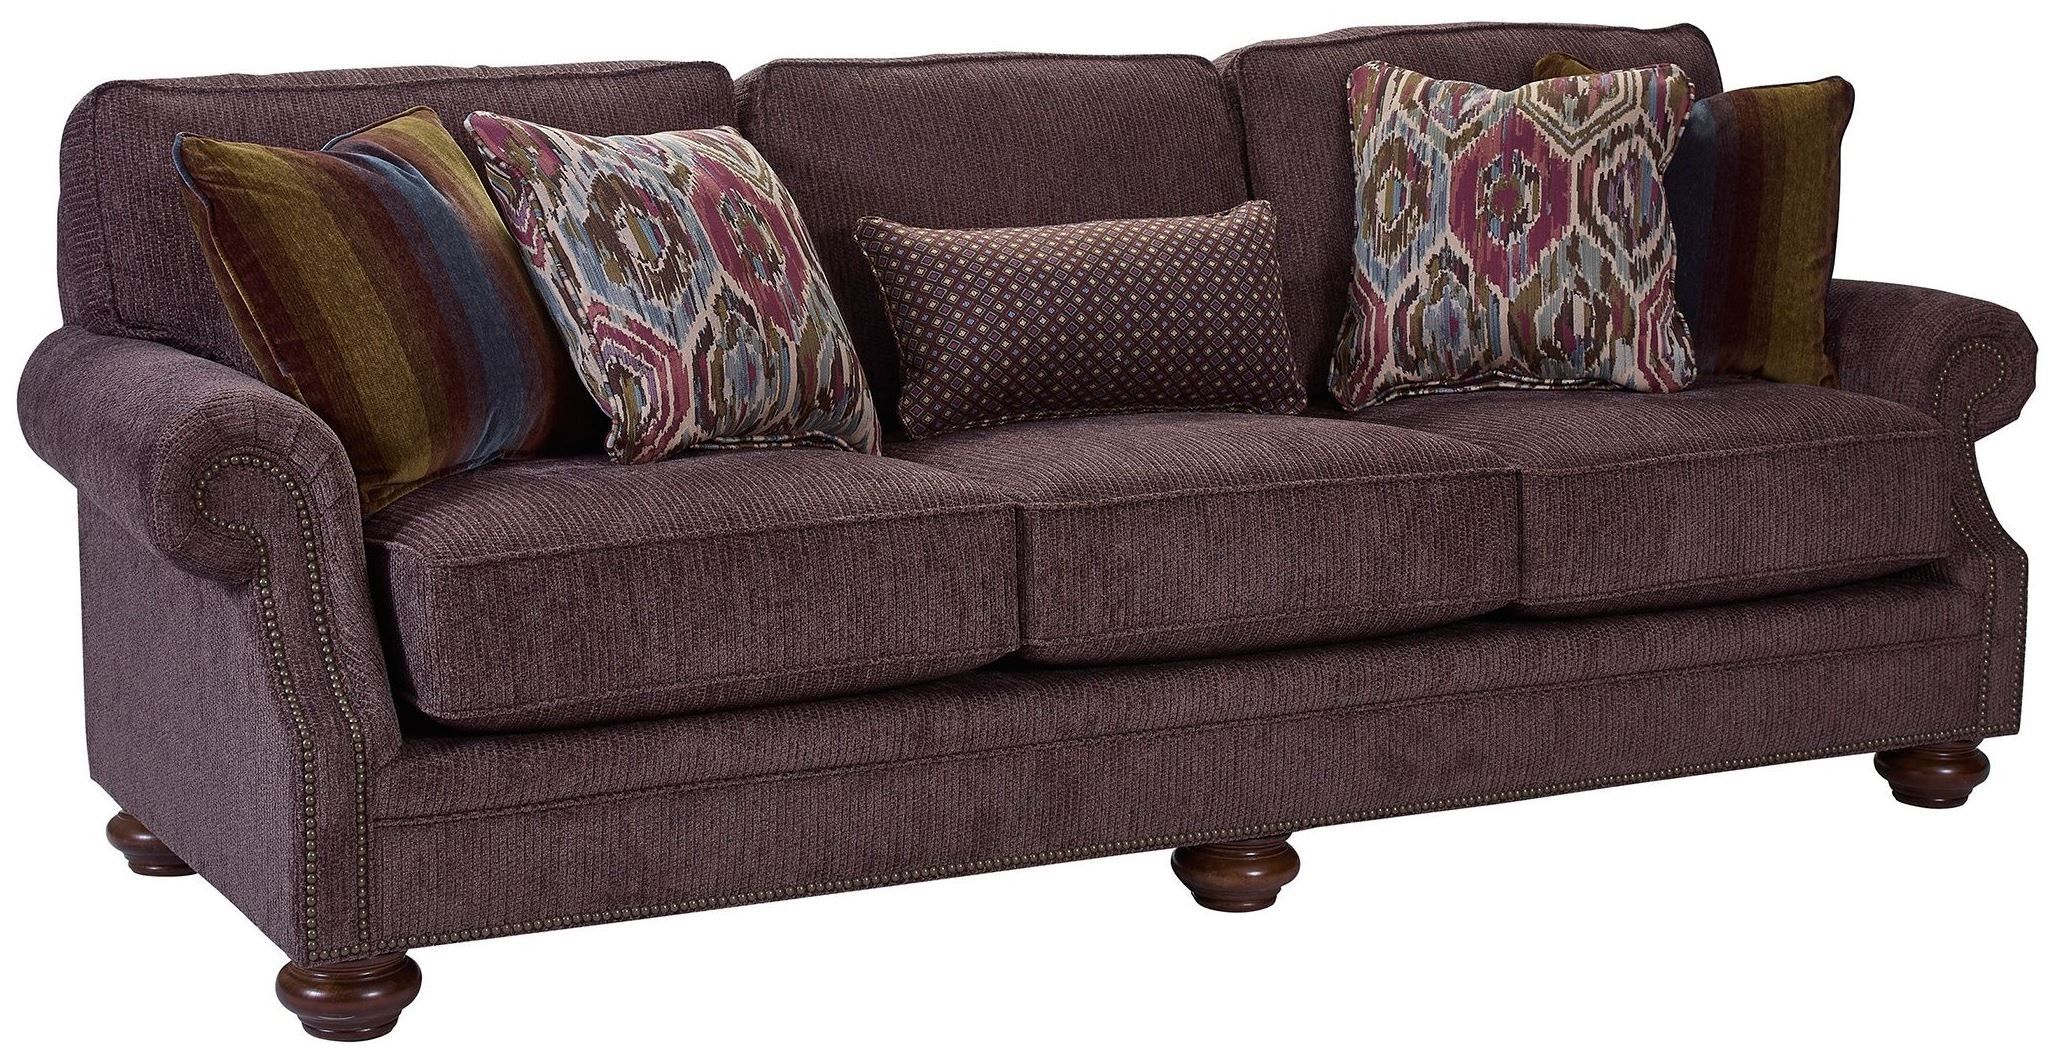 broyhill furniture sofa reviews hire a uk heuer walnut chenille fabric sofa, 4260-3q-4243-85,